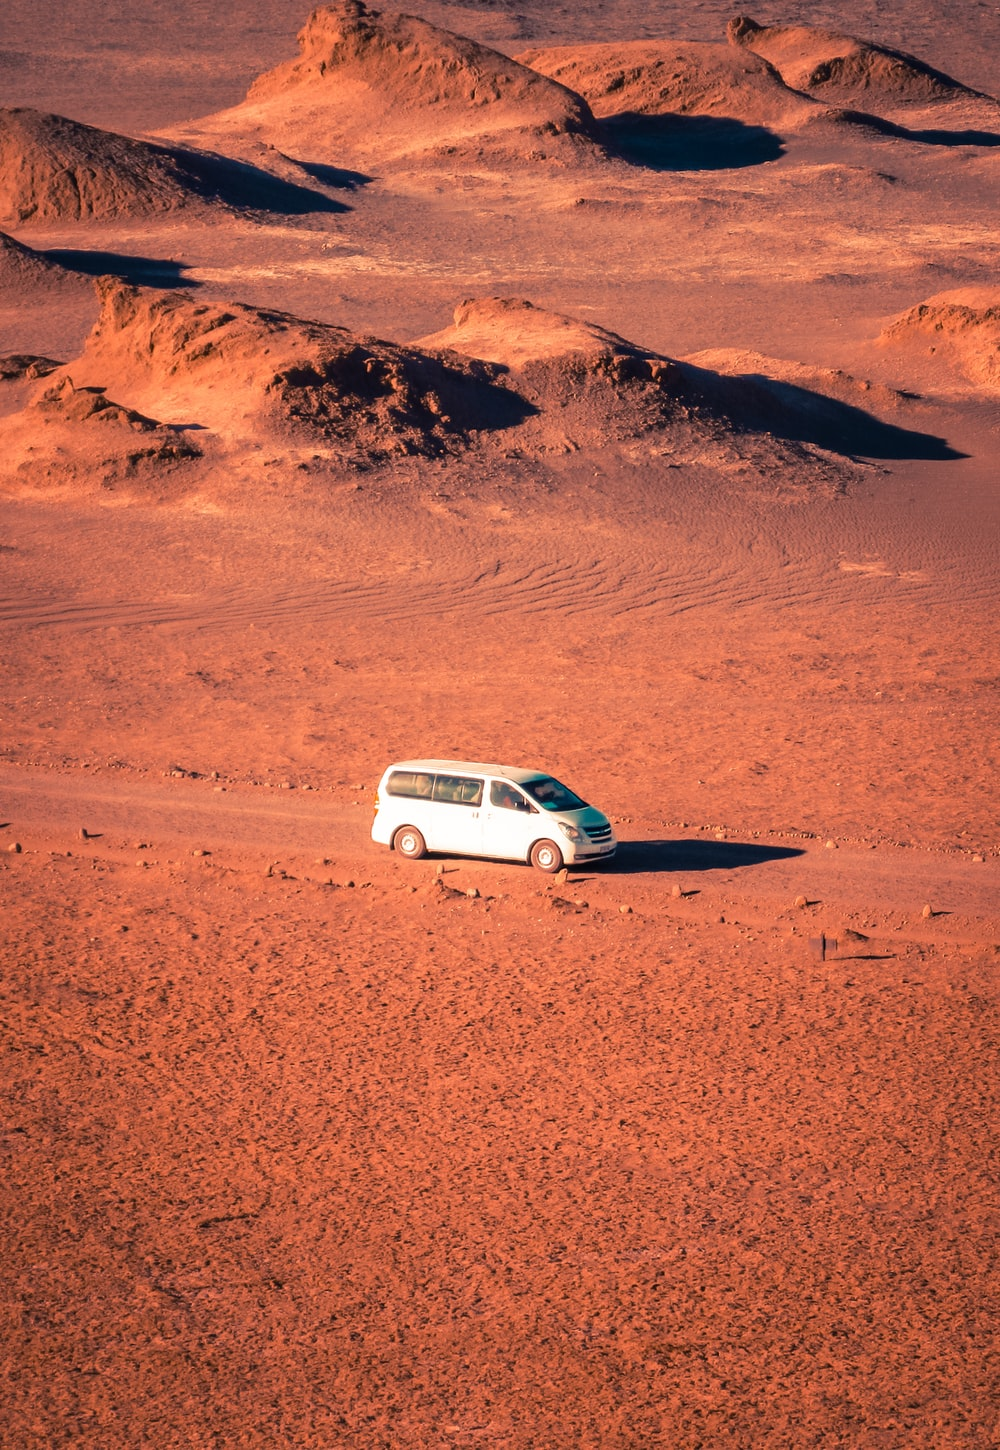 white van on desert photo